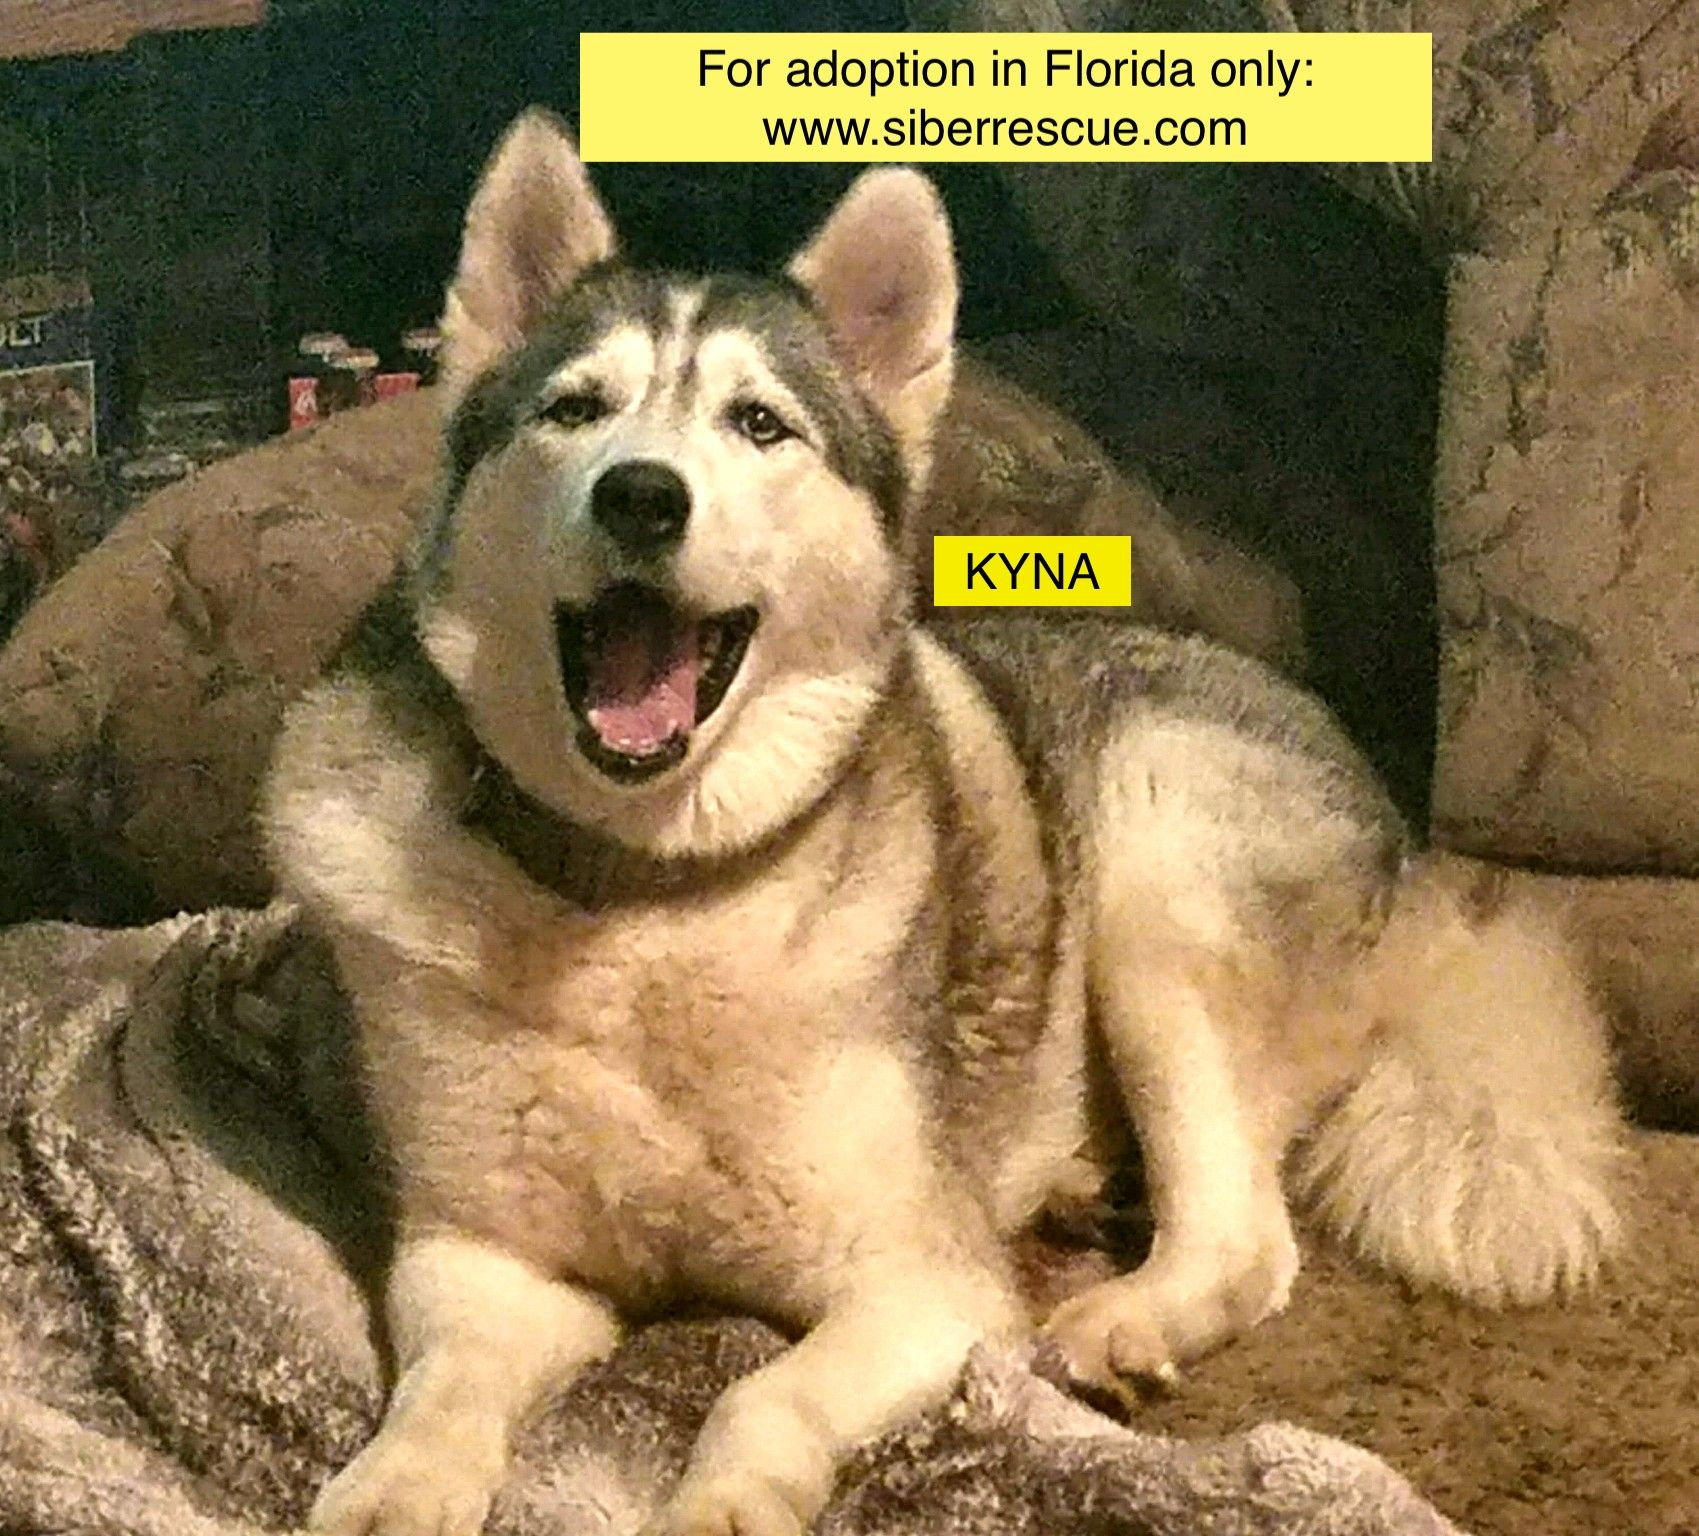 Florida Siberian Husky Kyna For Adoption In Fl Only Http